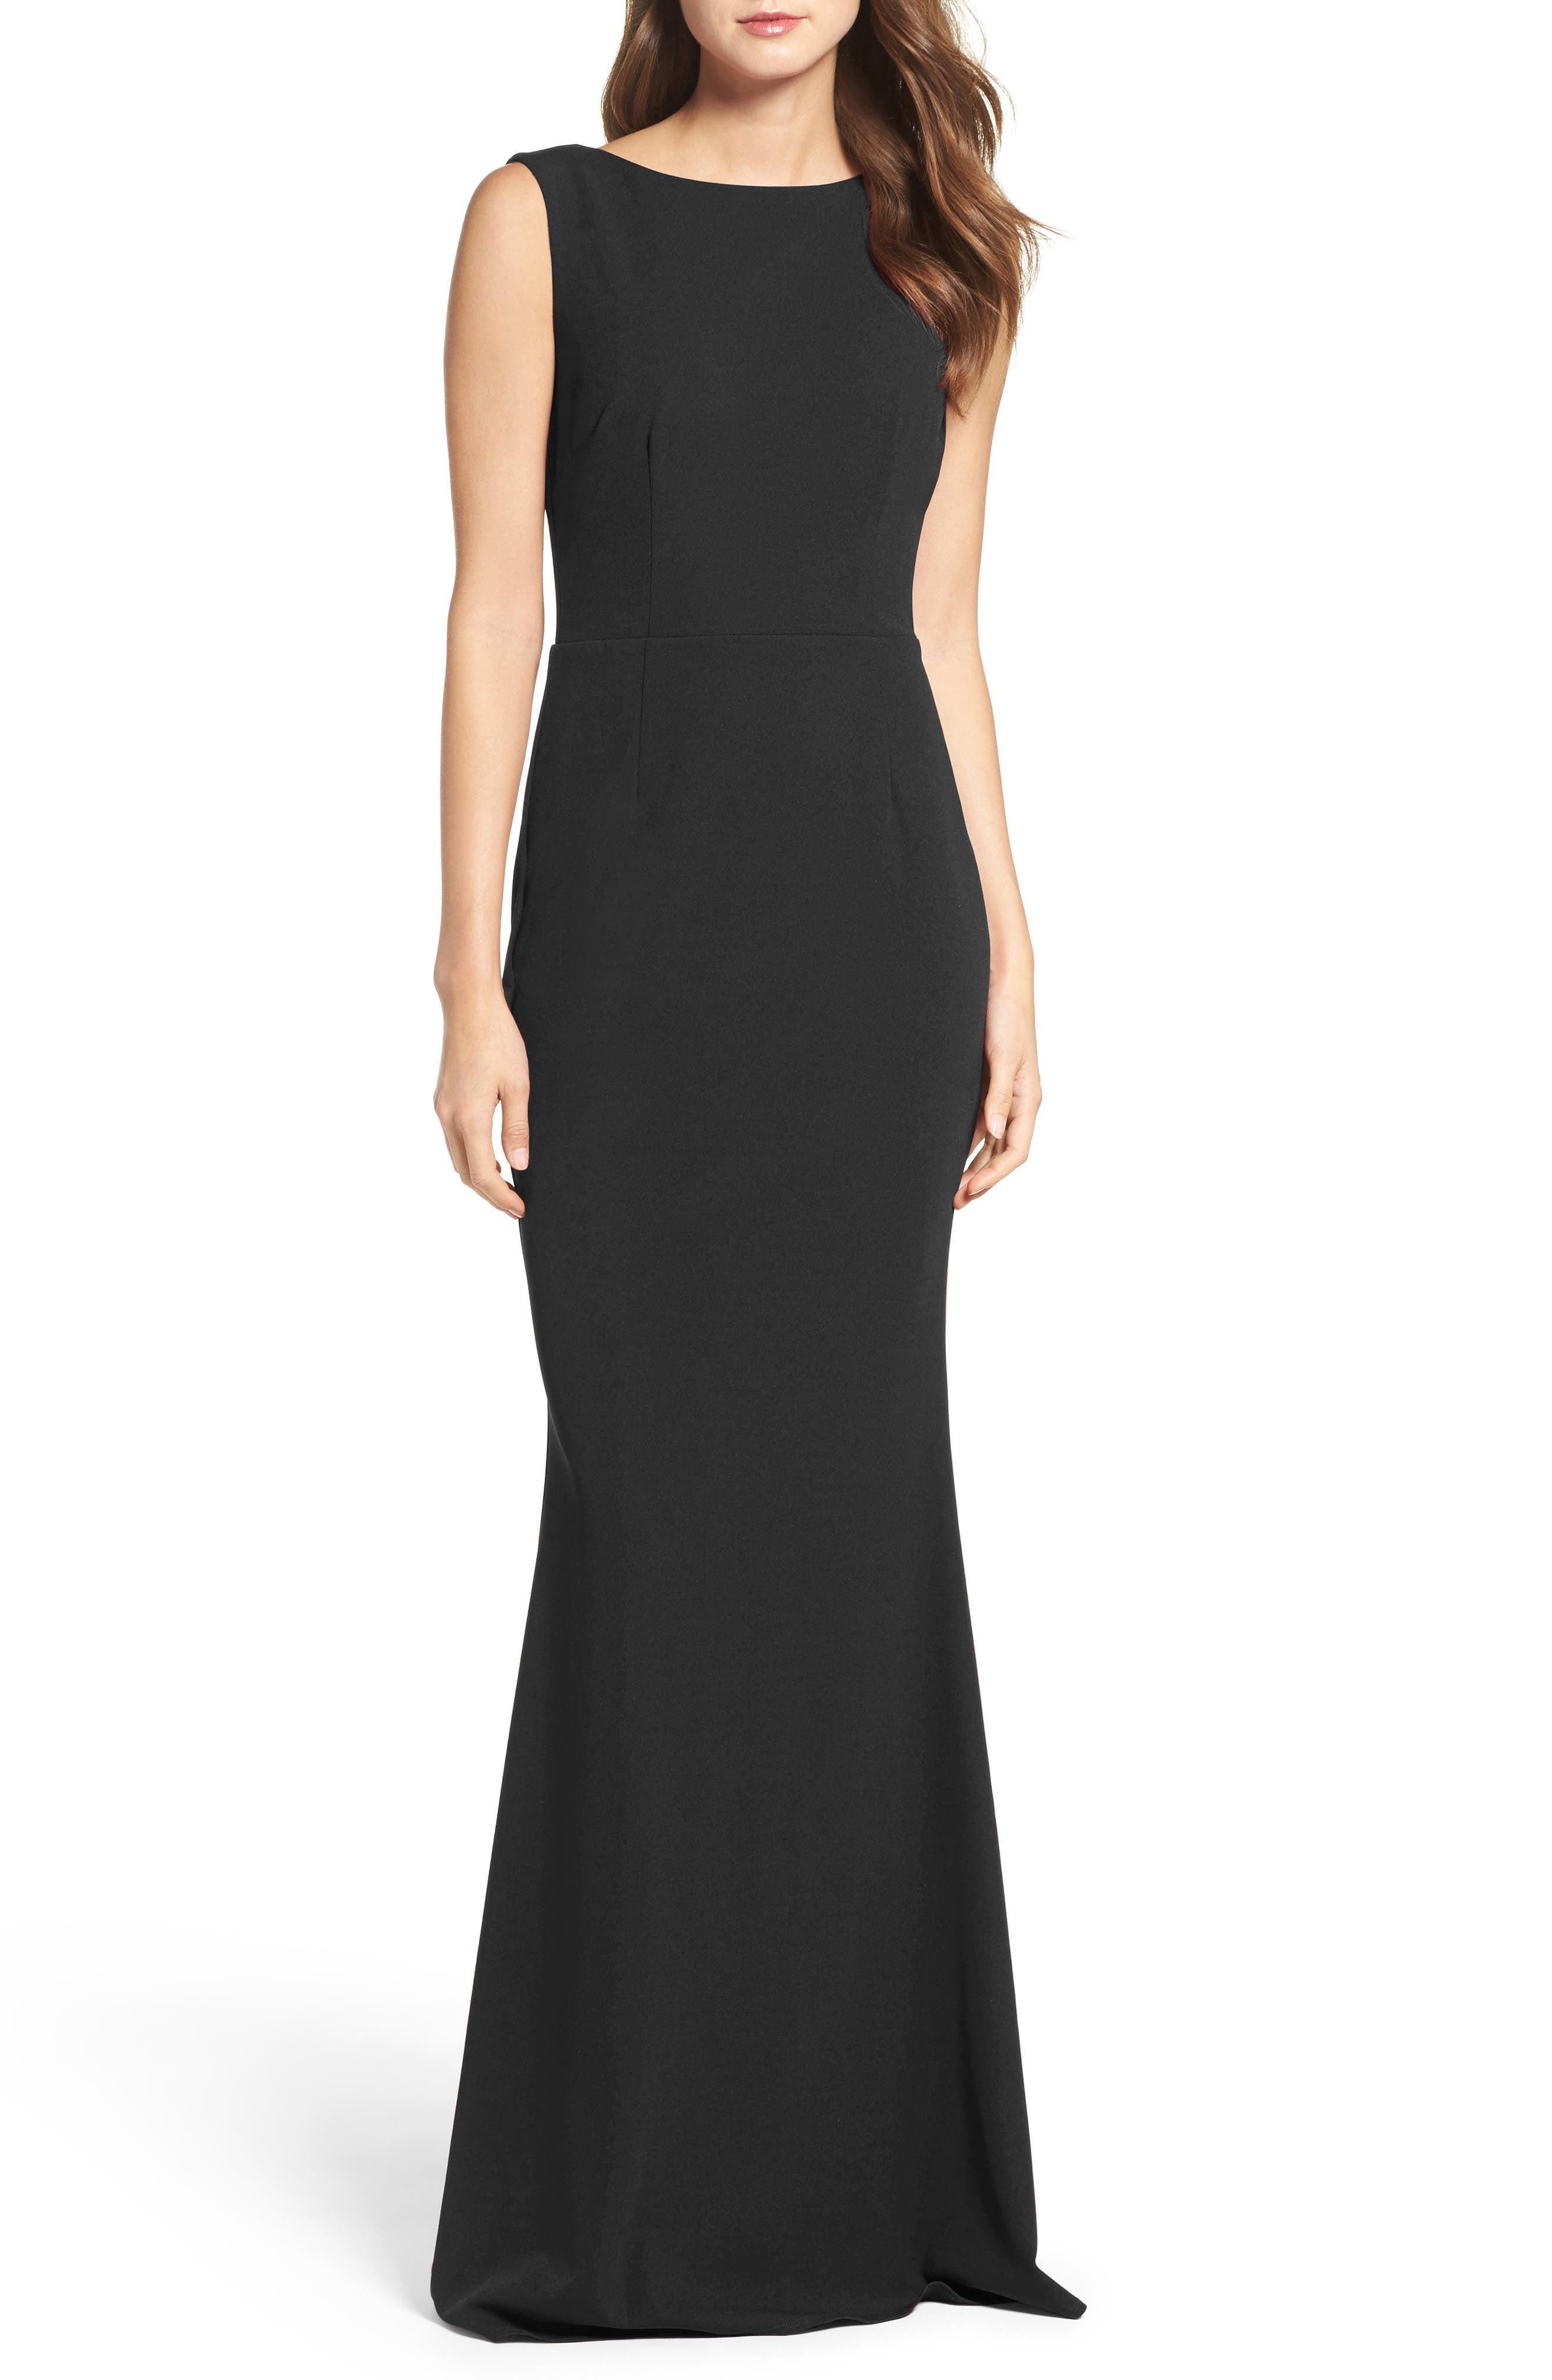 Katie May Vionnet Drape Back Crepe Gown, Black